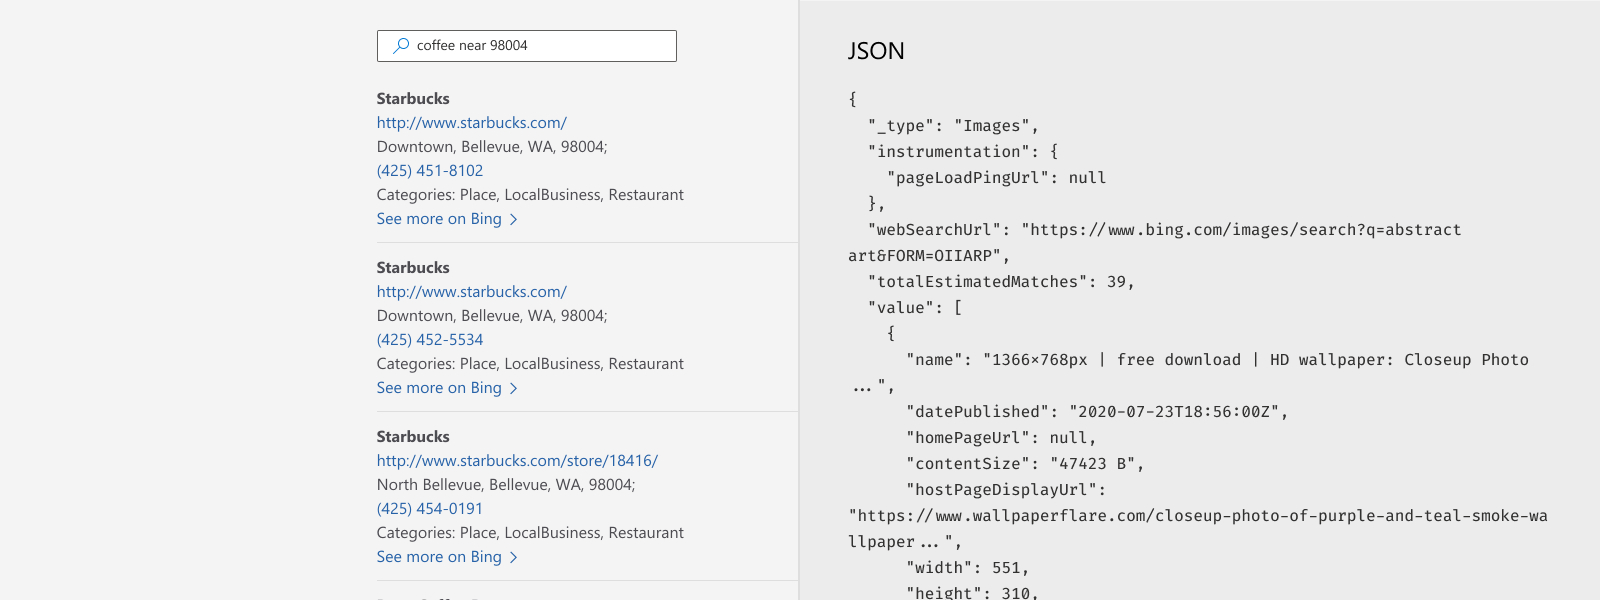 Illustration of JSON response for Bing Entity Search API.